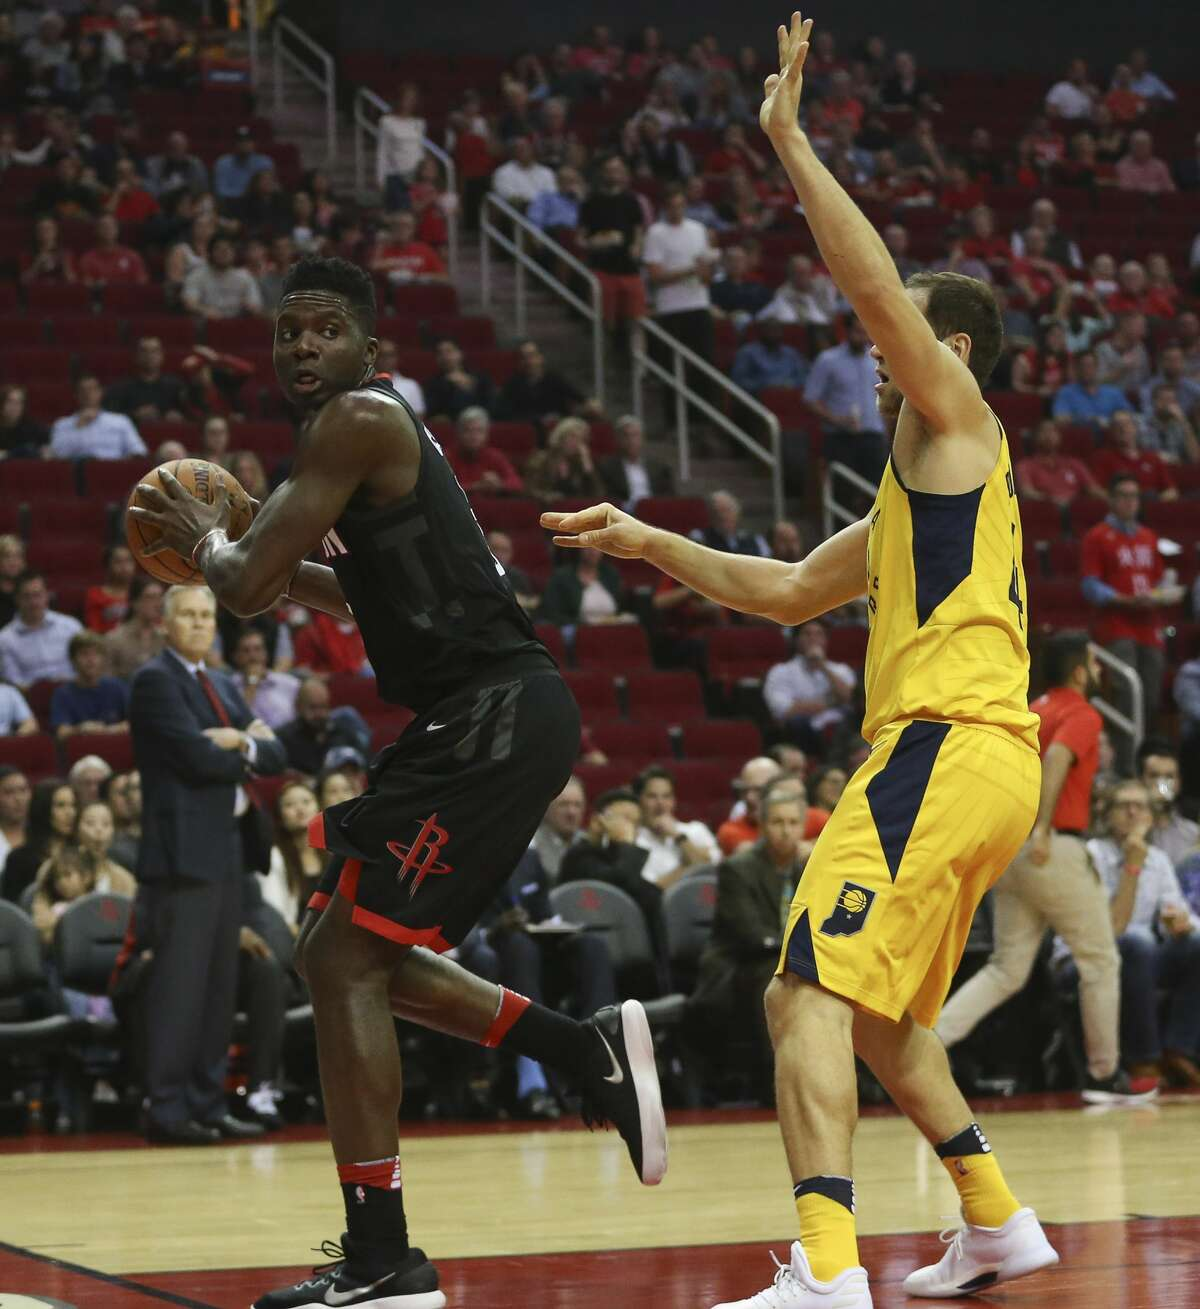 Houston Rockets center Clint Capela (15) goes out-of-bounce while trying to make a pass during the first quarter of a NBA game against the Indiana Pacers at Toyota Center on Wednesday, Nov. 29, 2017, in Houston. ( Yi-Chin Lee / Houston Chronicle )